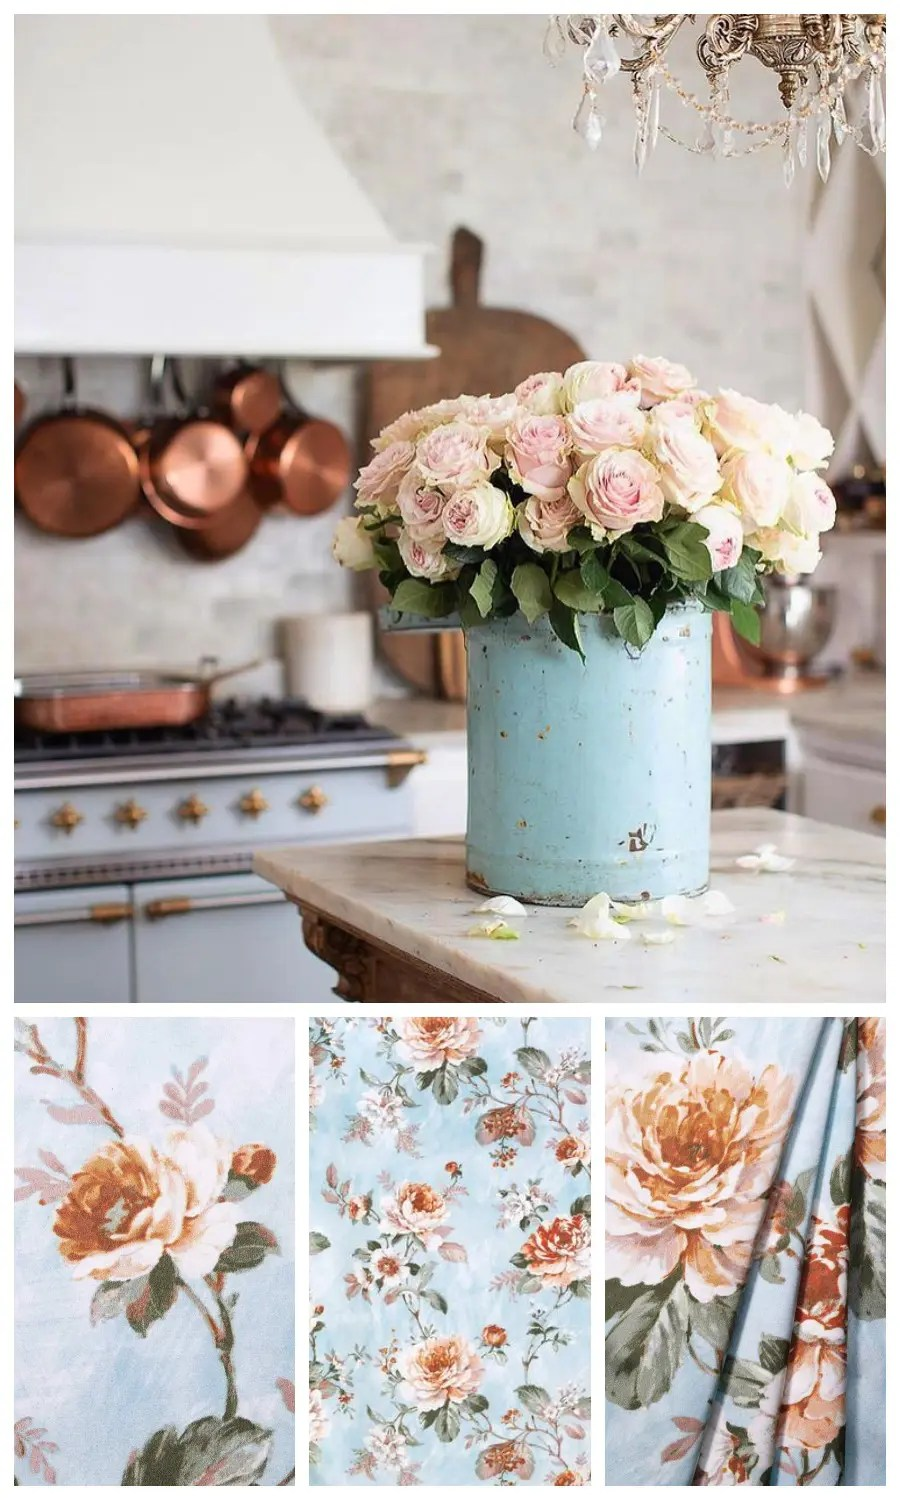 MONDAY MOOD: INSPIRED BY 'WOODLAND BLUE'